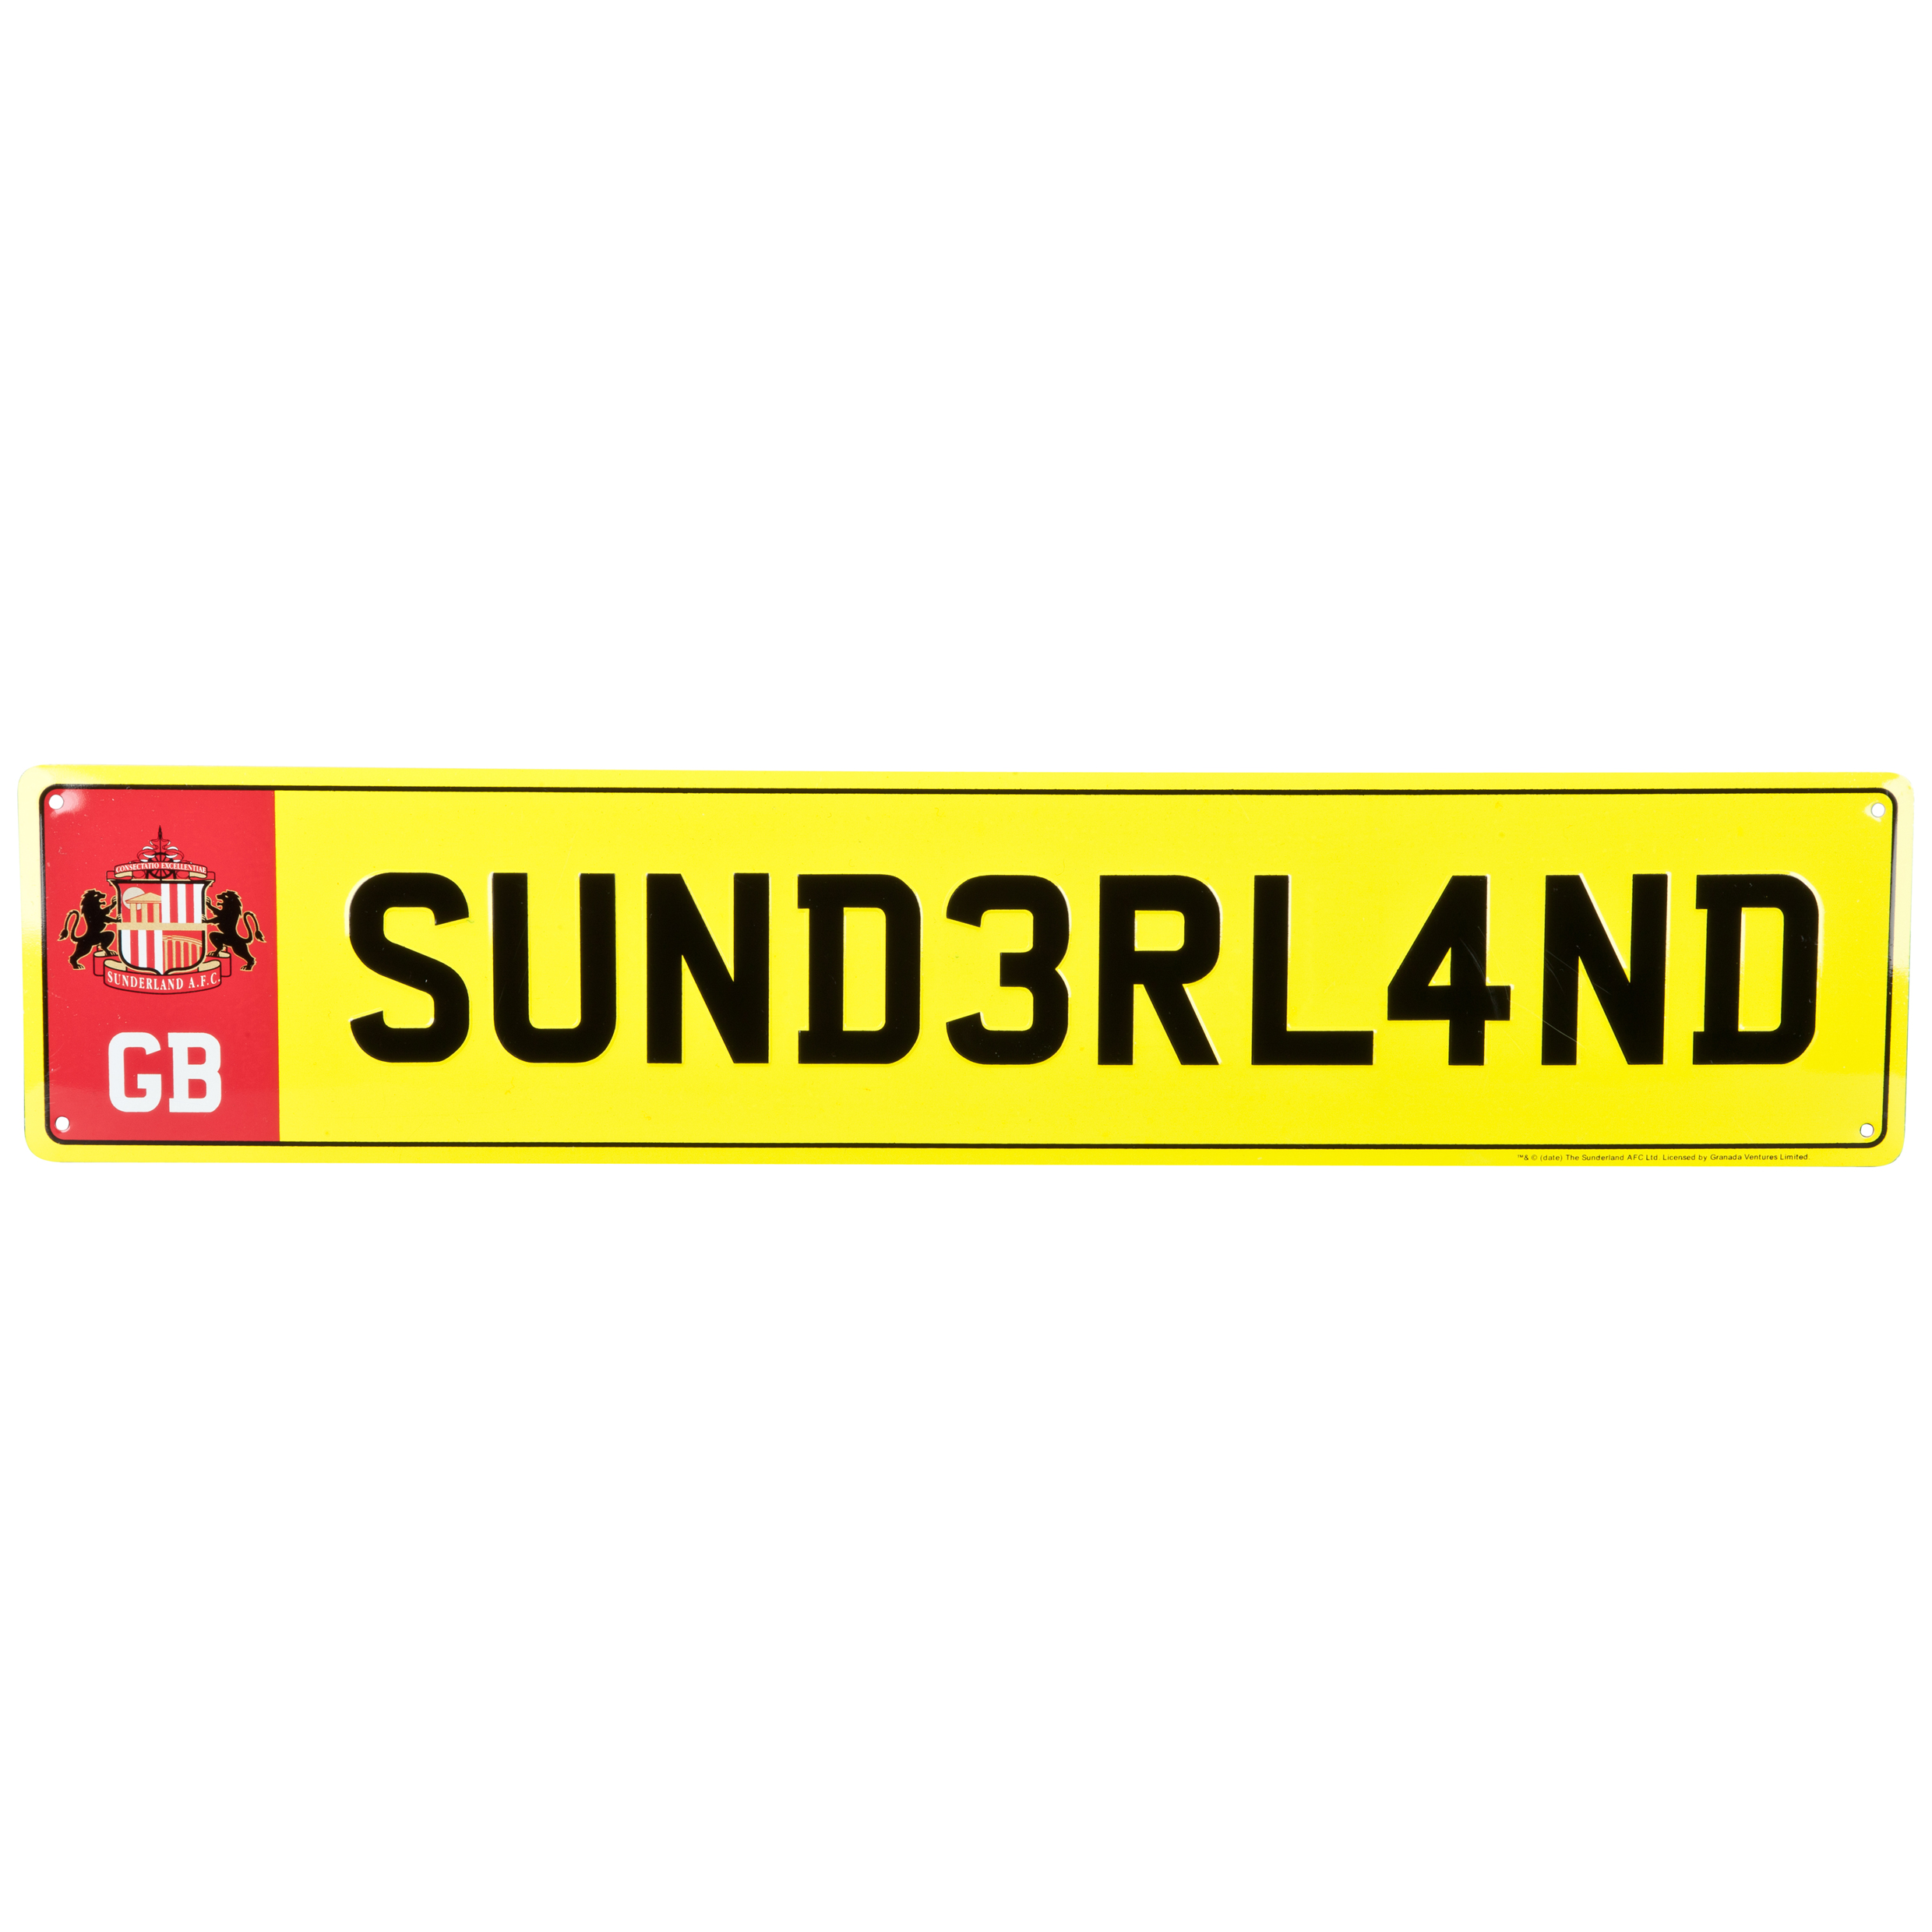 Sunderland Licensed Plate Metal Sign - 52x11